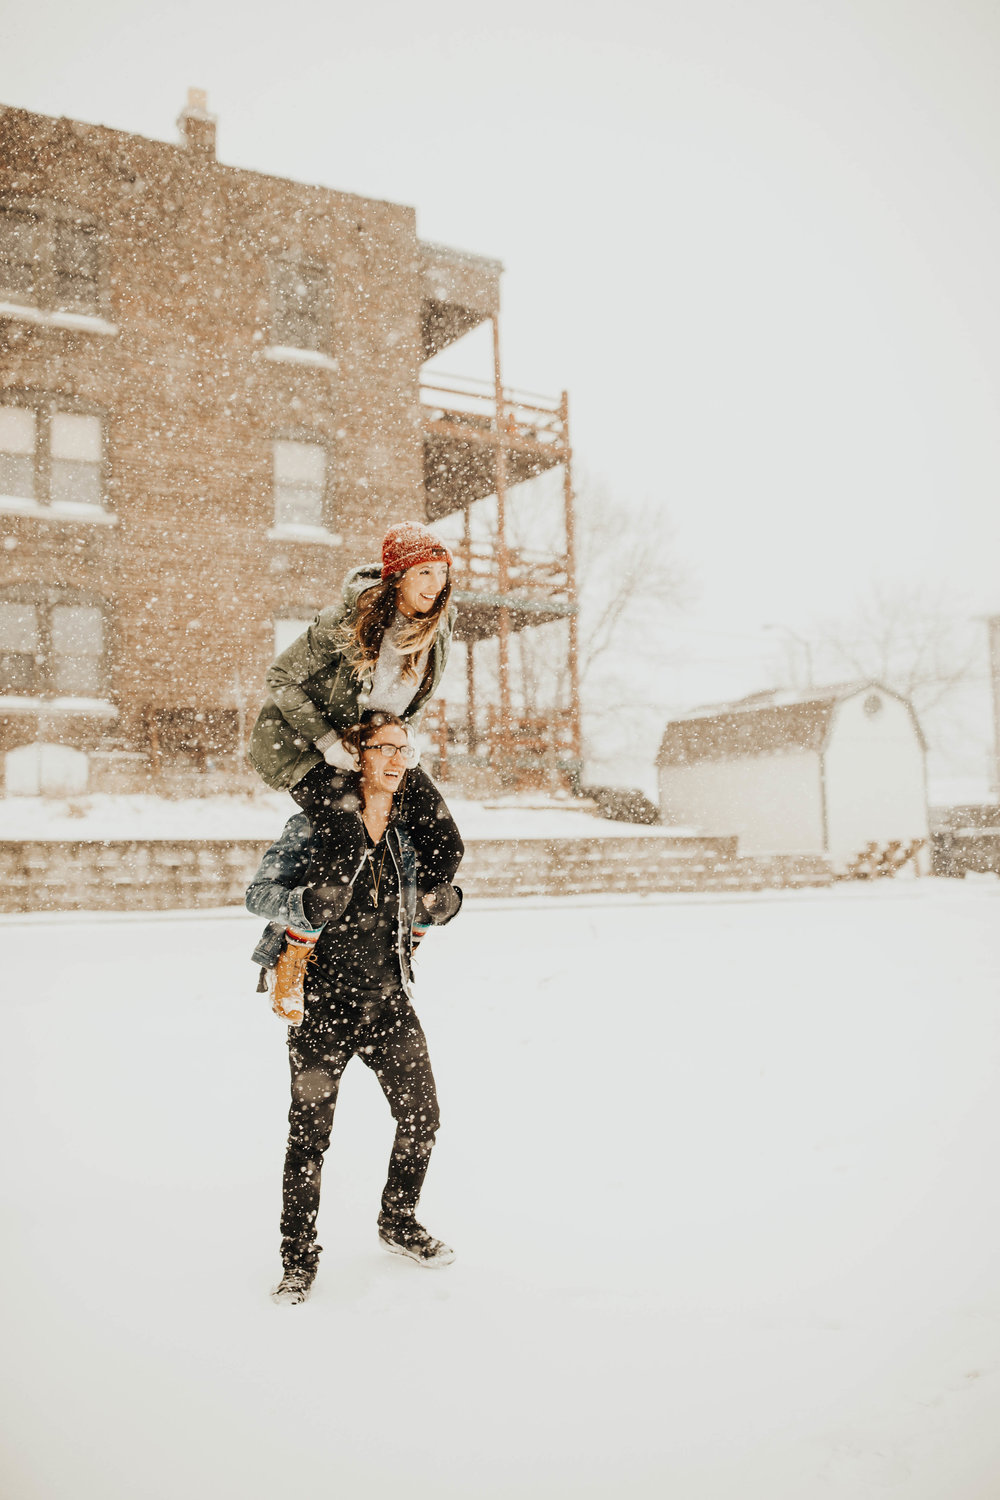 DJ and Erin Kansas City Snowfall Engagement 10.jpg